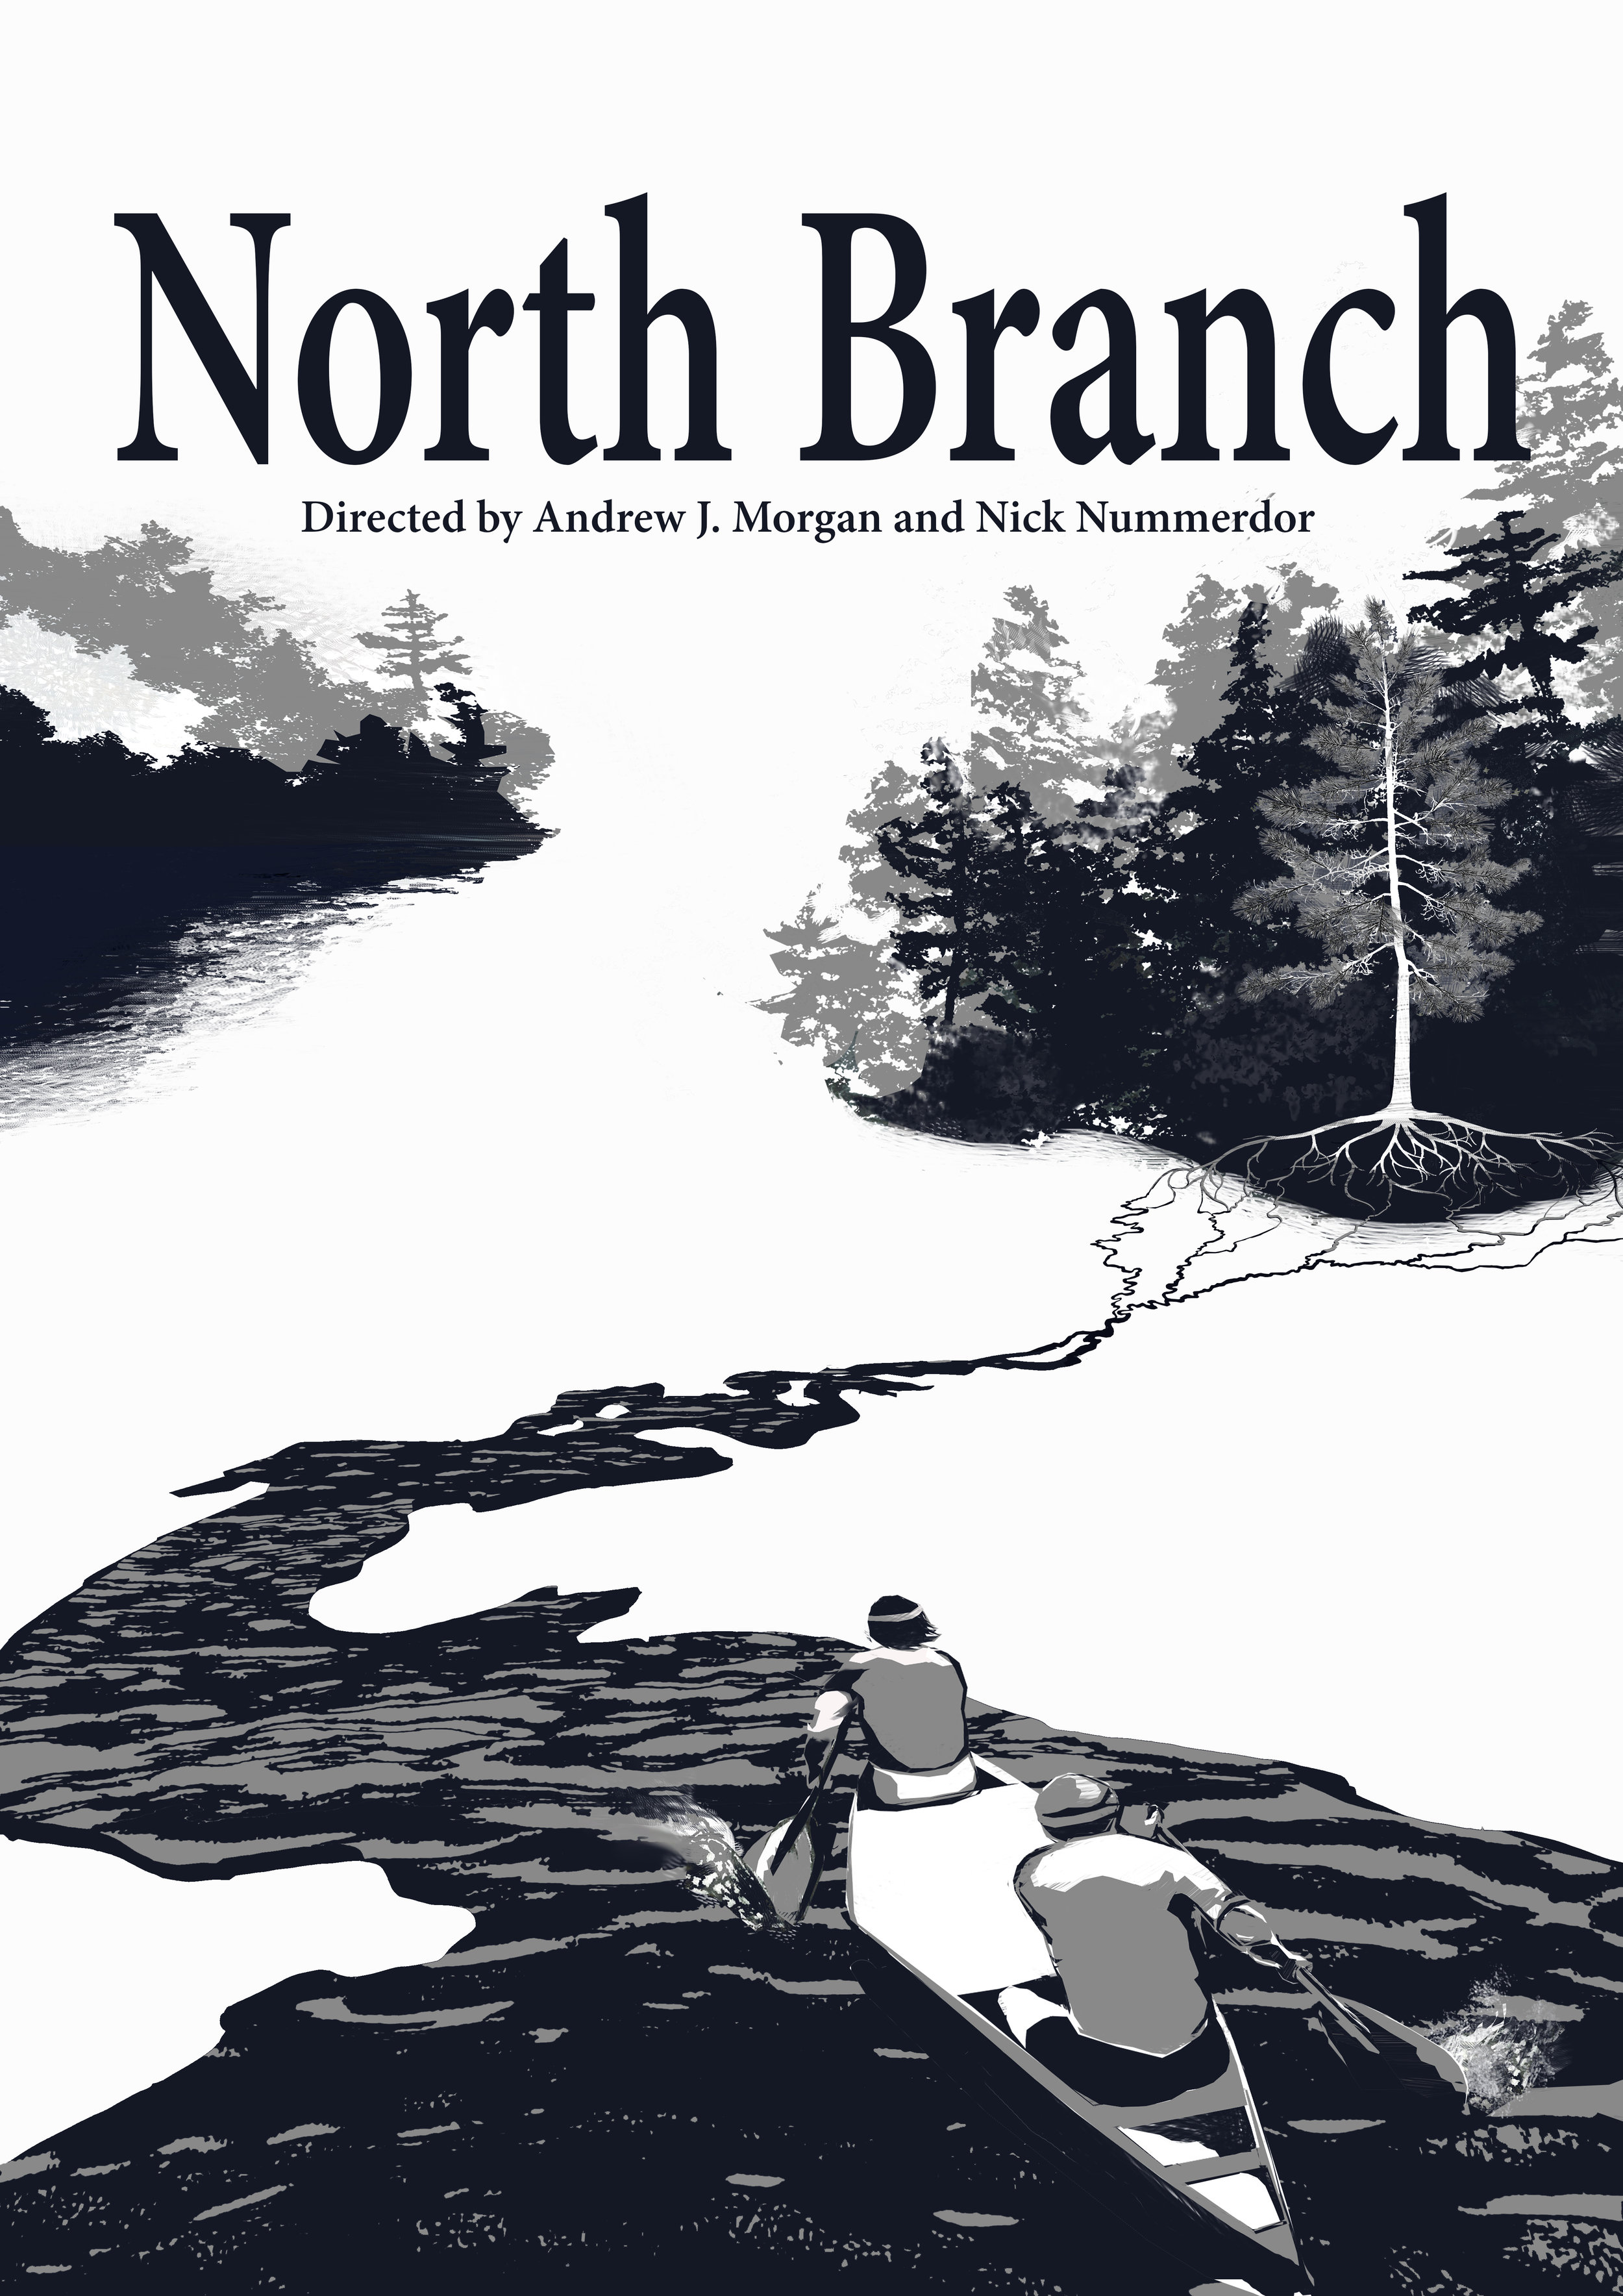 North Branch Poster 2018 flattened.jpg